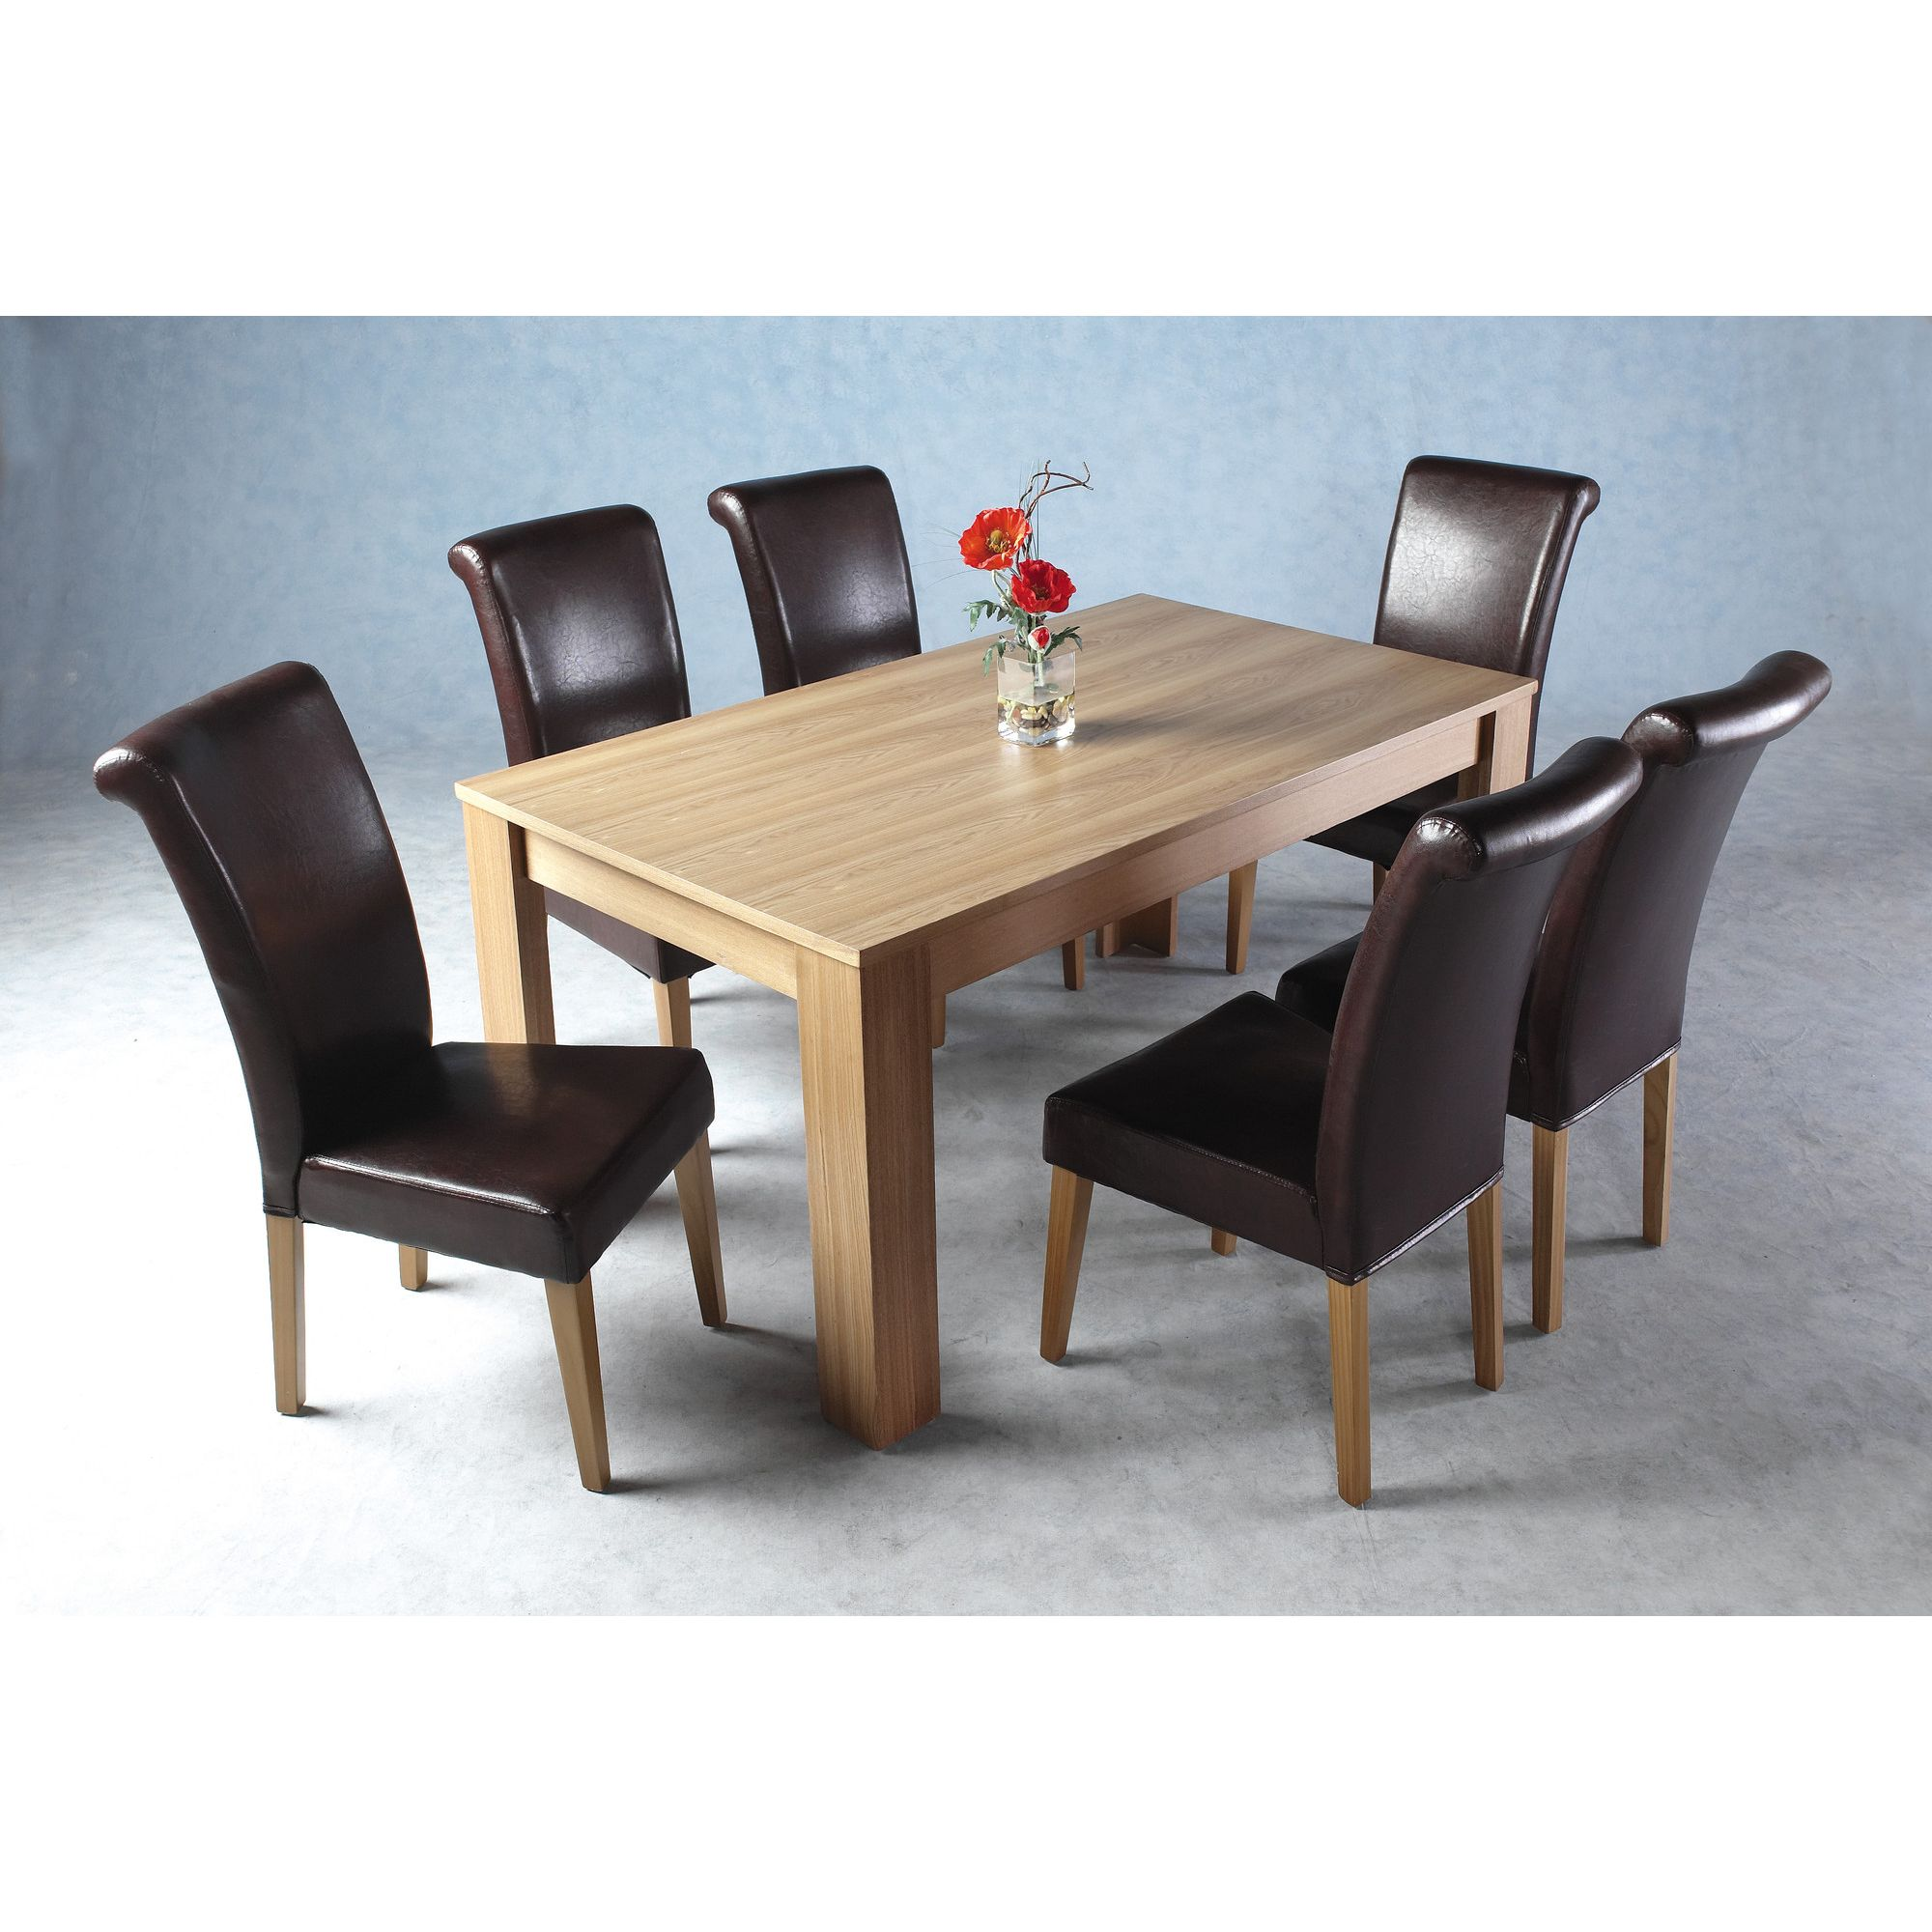 Home Essence Dunoon 7 Piece Dining Set at Tesco Direct